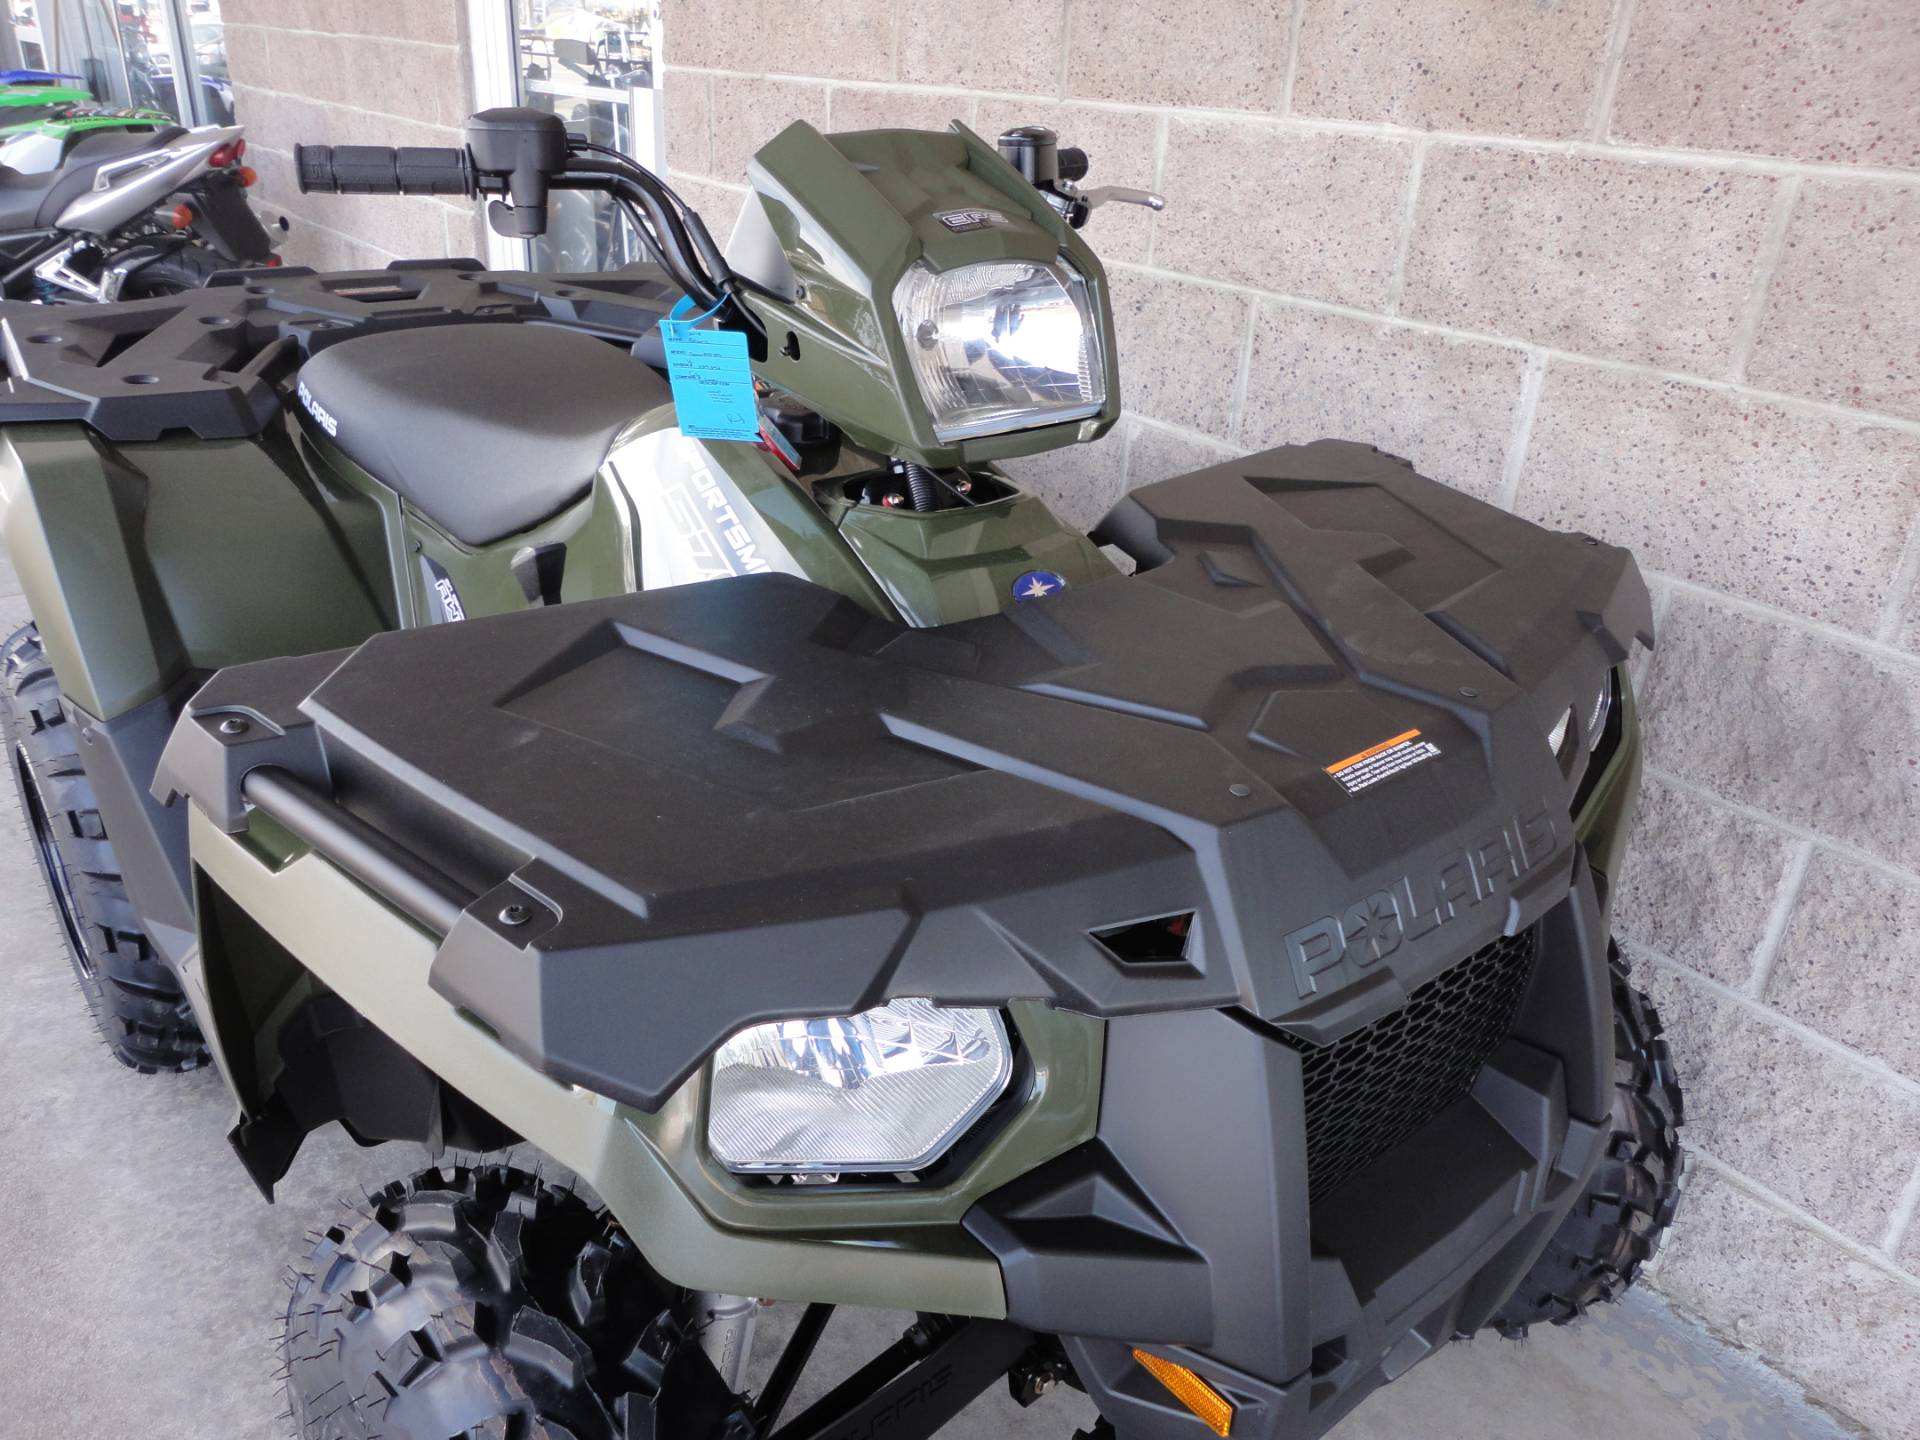 2020 Polaris Sportsman 570 EPS in Denver, Colorado - Photo 4